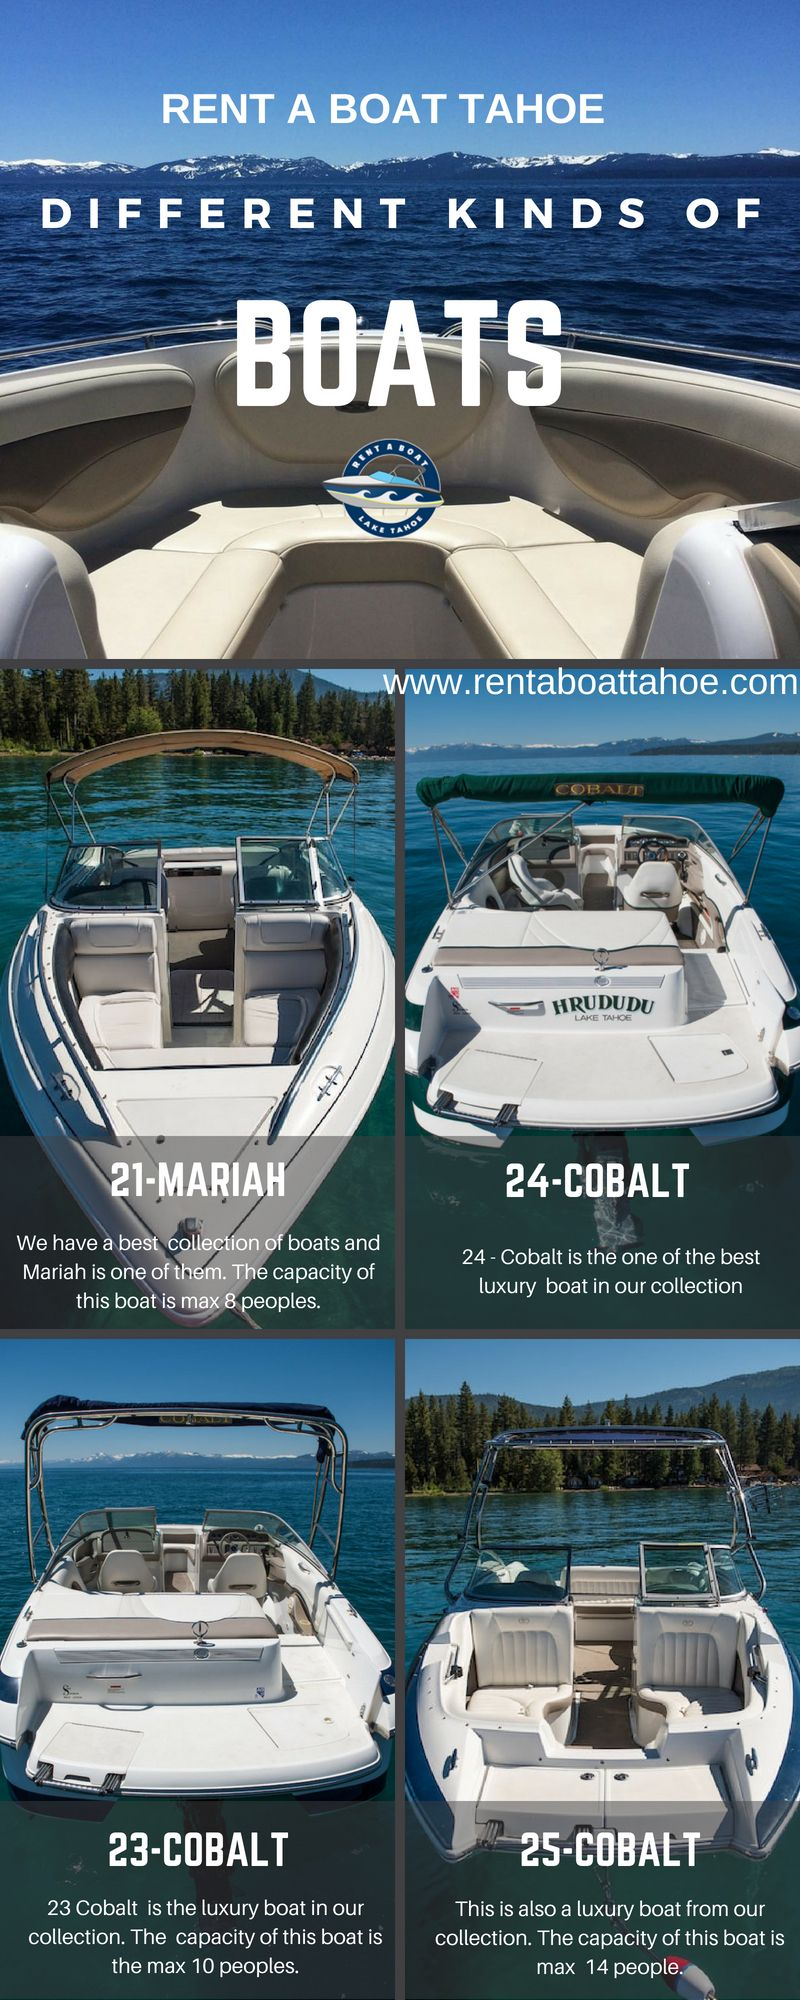 Find Luxury Boats For A Adventure Boat Ride On Lake Tahoe We Have